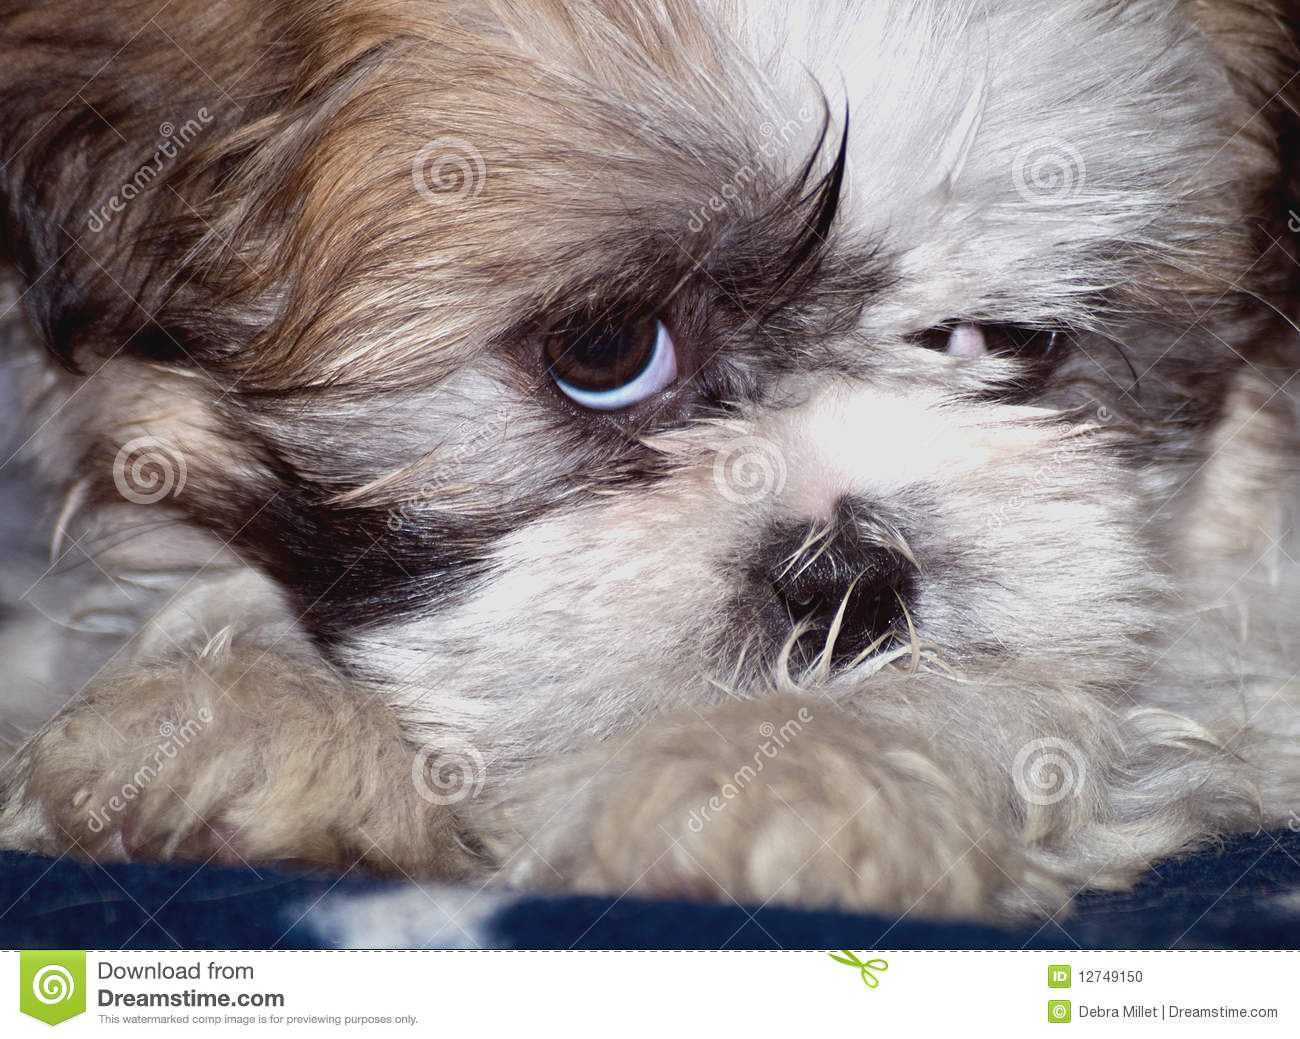 Cute Shih Tzu Puppies Wallpaper Sleepy Shih Tzu Lapso Puppy Stock Photo Image Of Animals